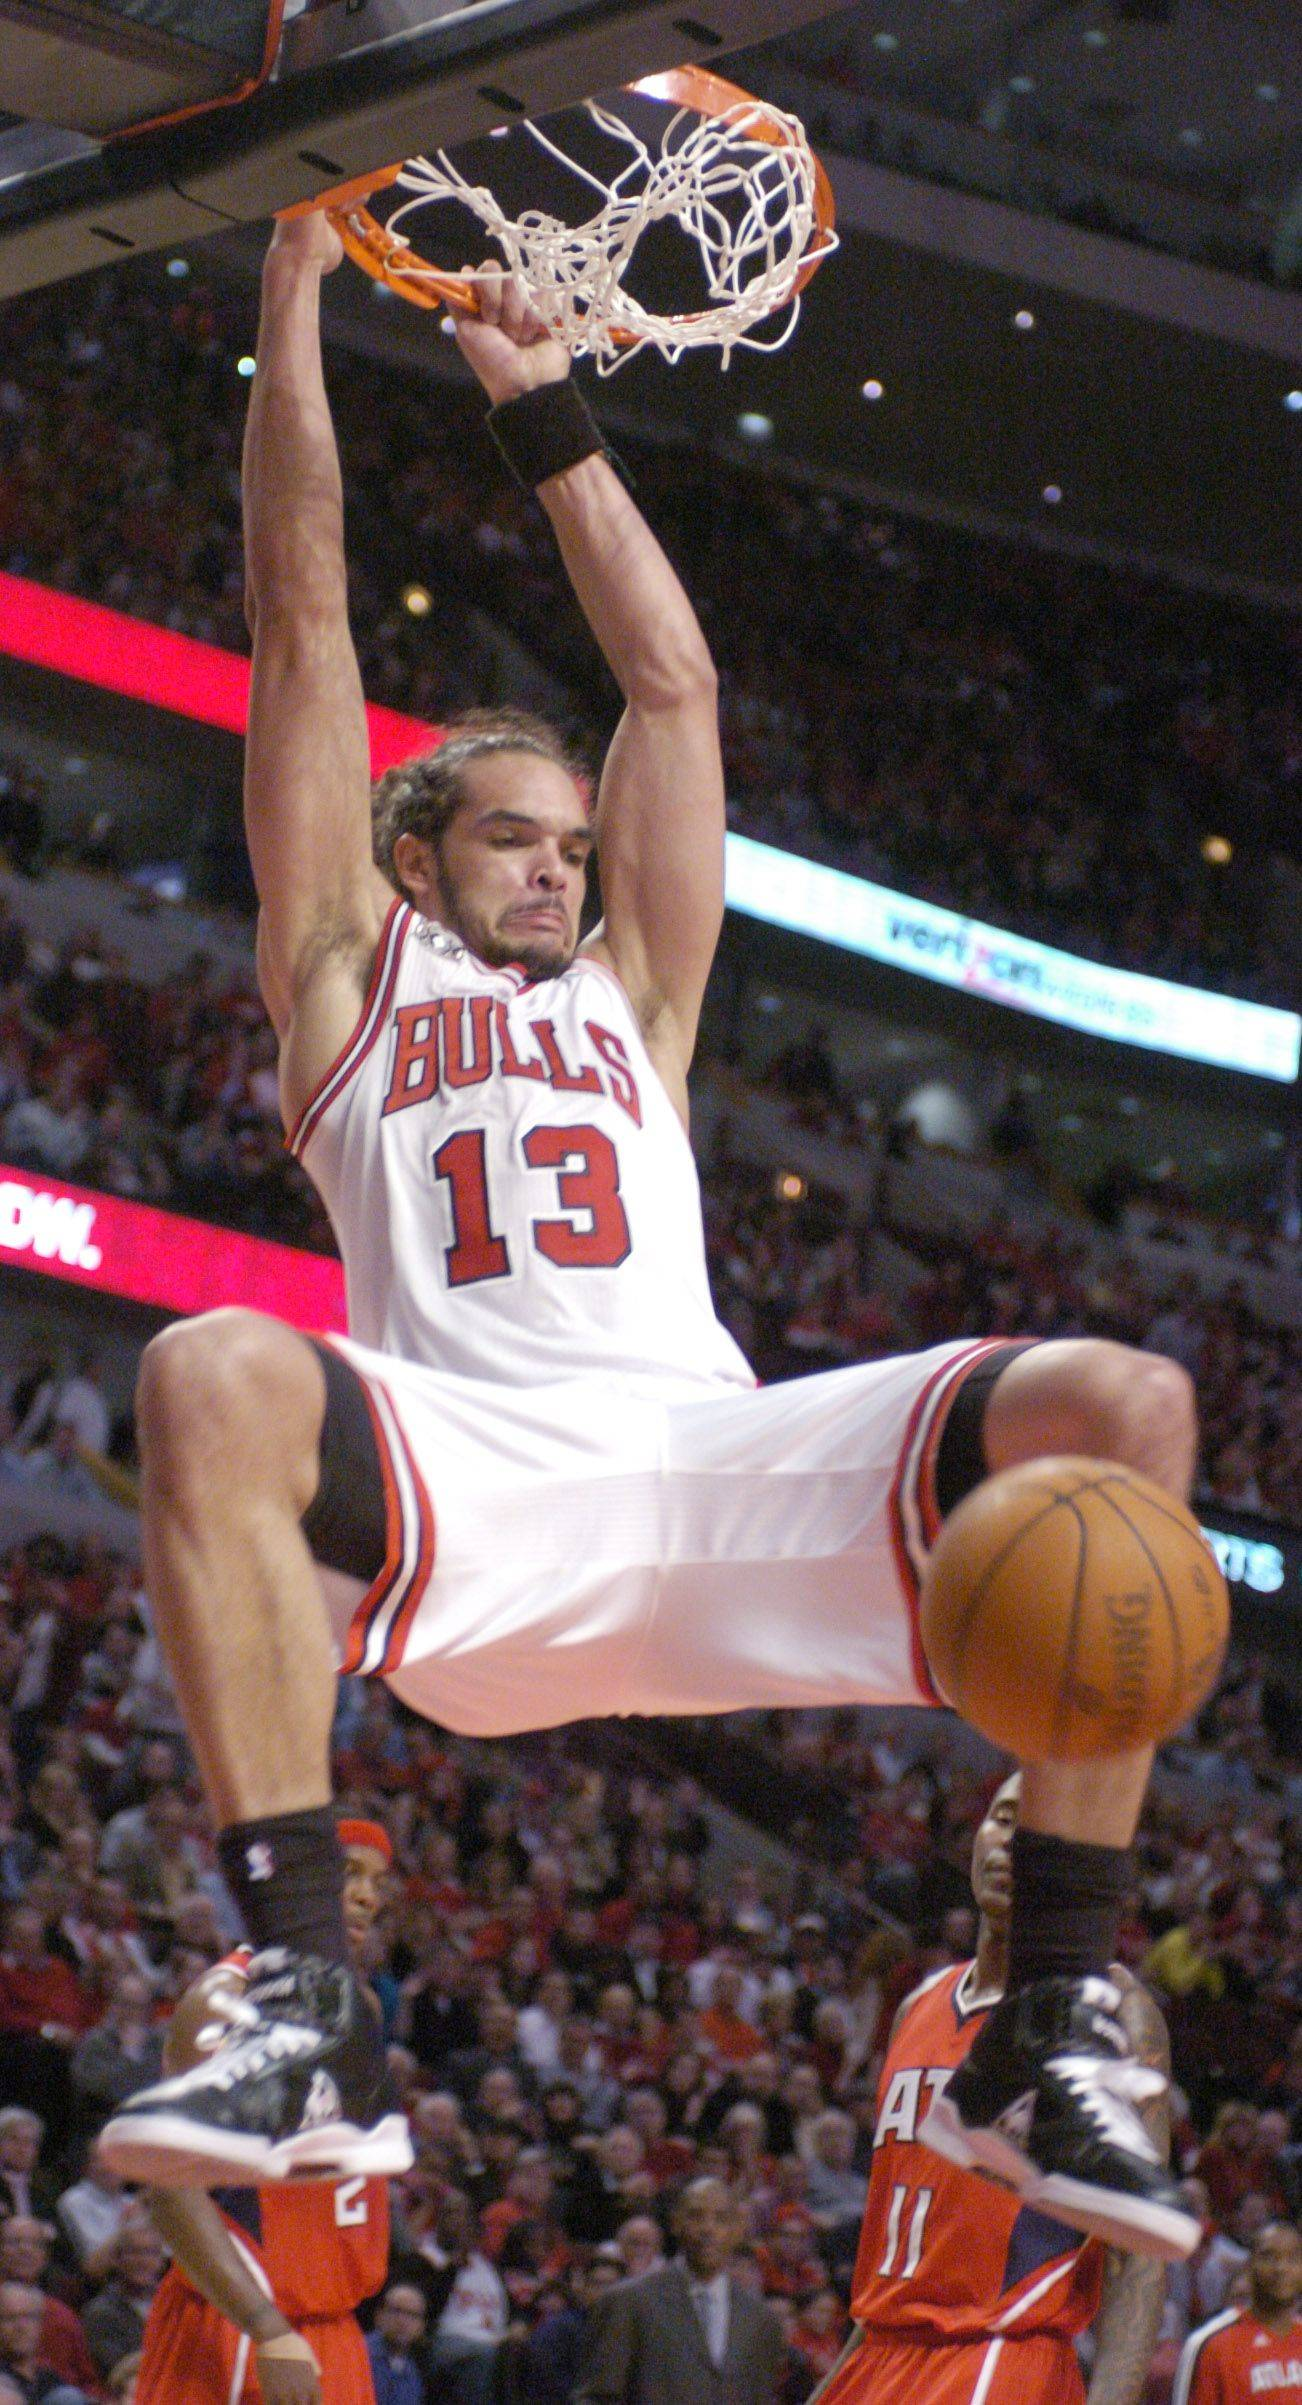 The Bulls' Joakim Noah hangs on the rim after dunking Wednesday's against the Hawks.